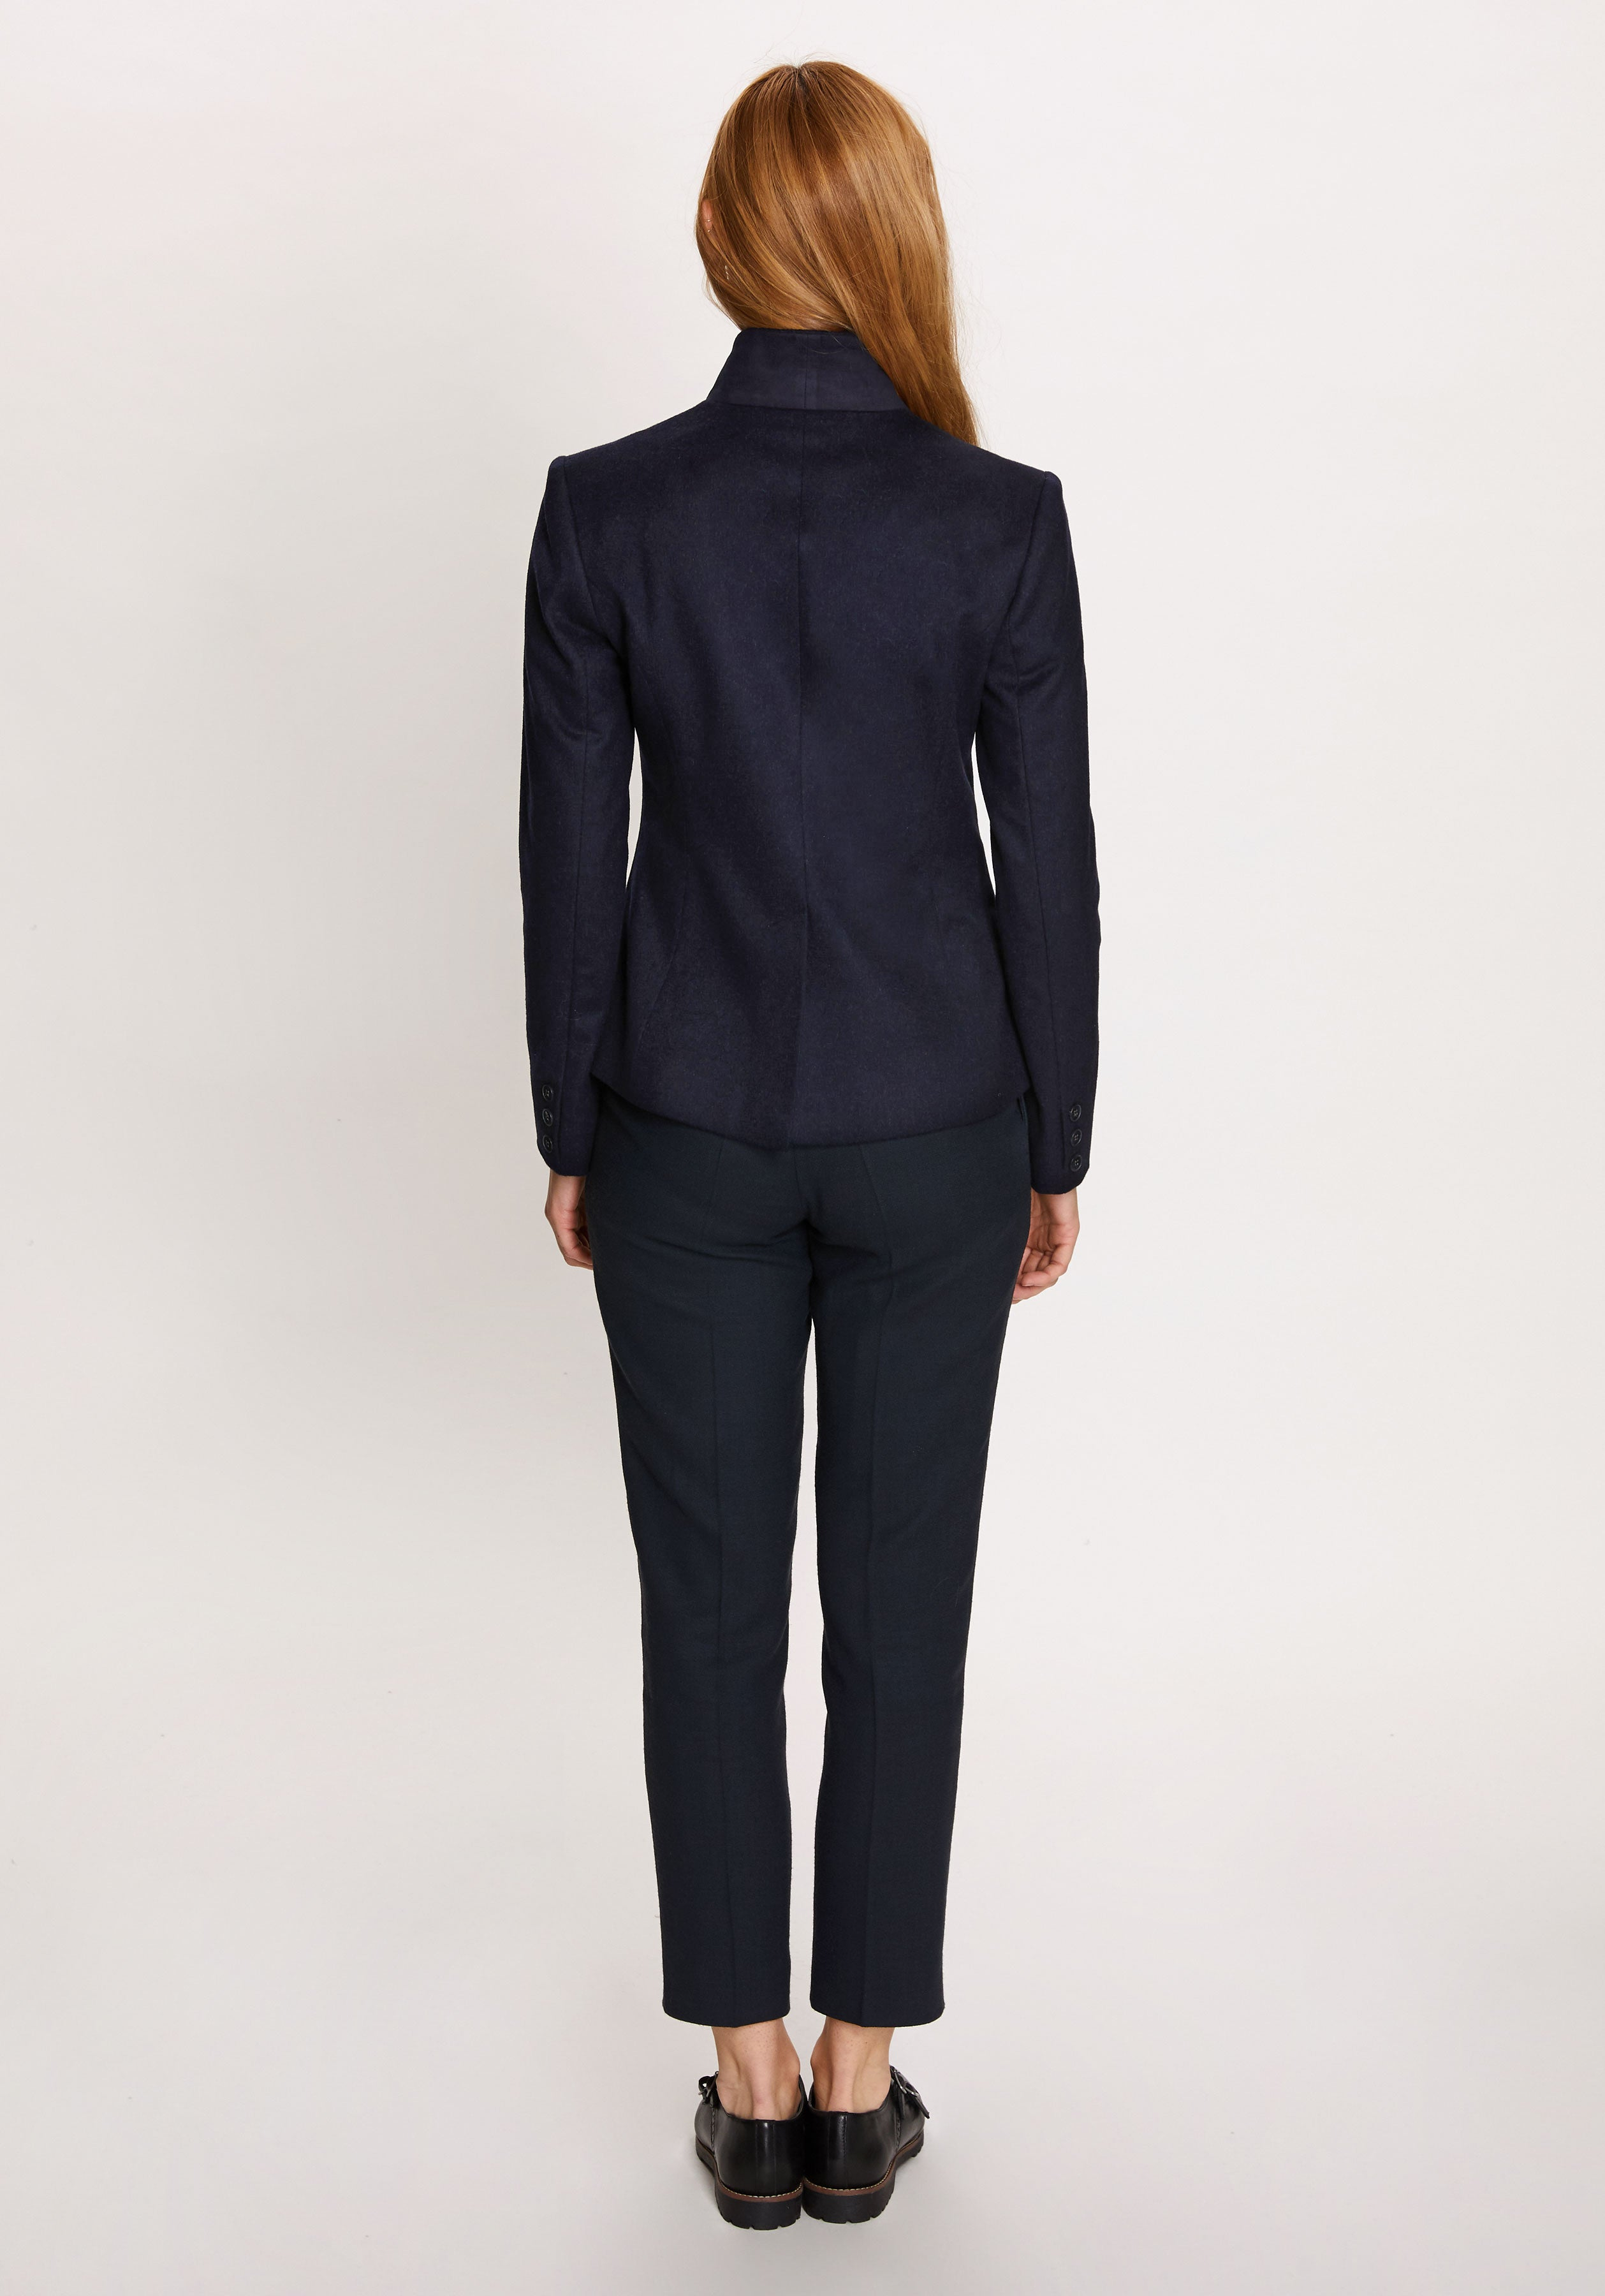 Tallulah Jacket in Navy Cashmere